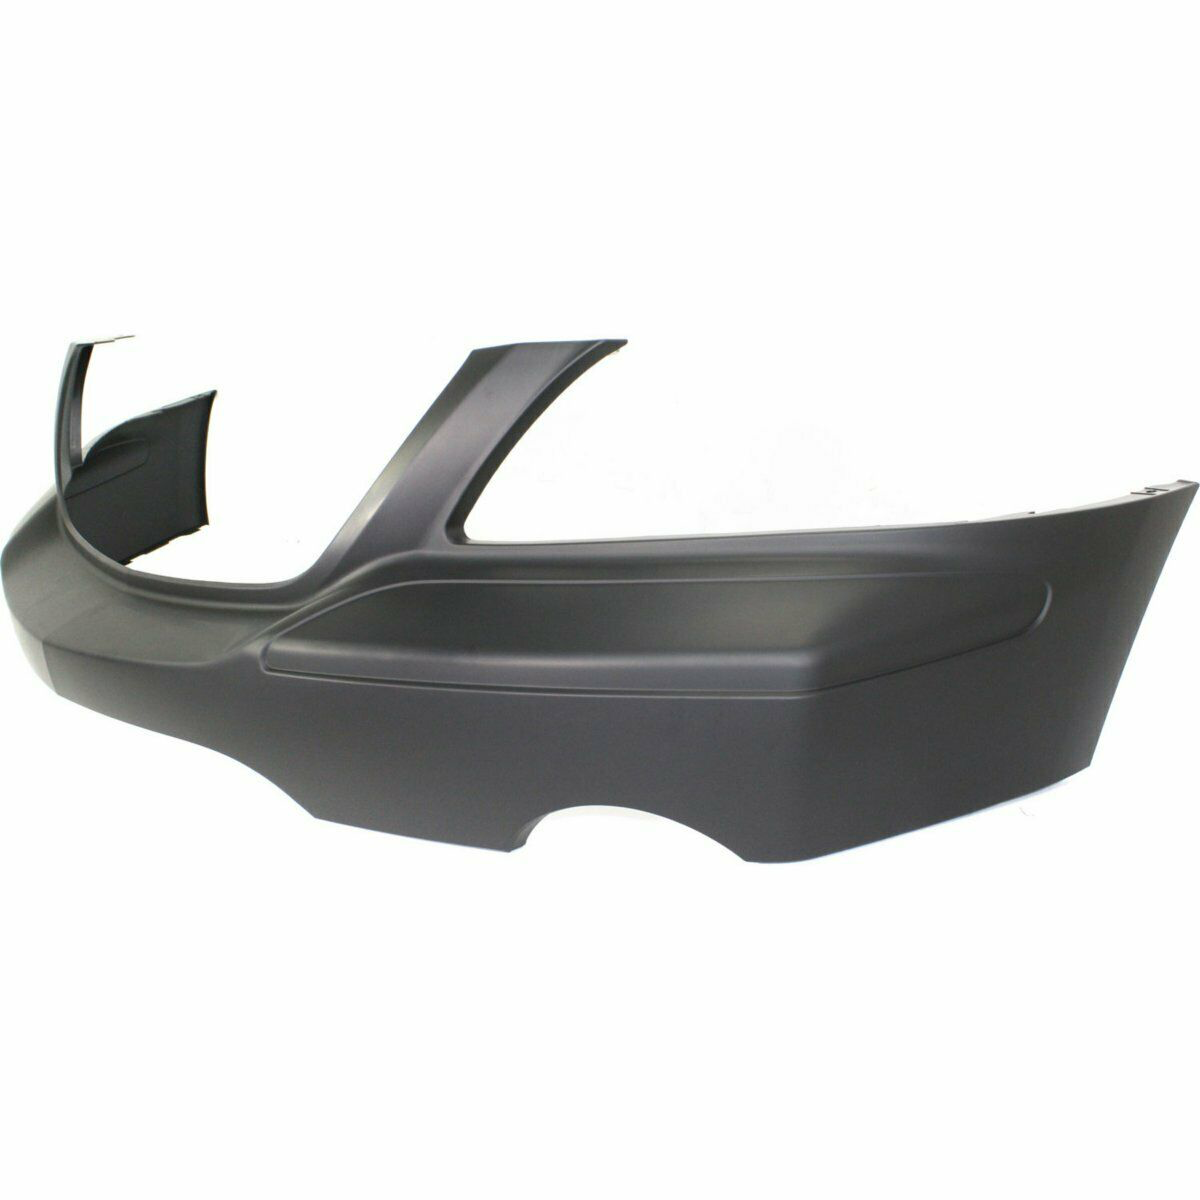 2004-2006 Chrysler Pacifica Base Front Bumper Painted to Match